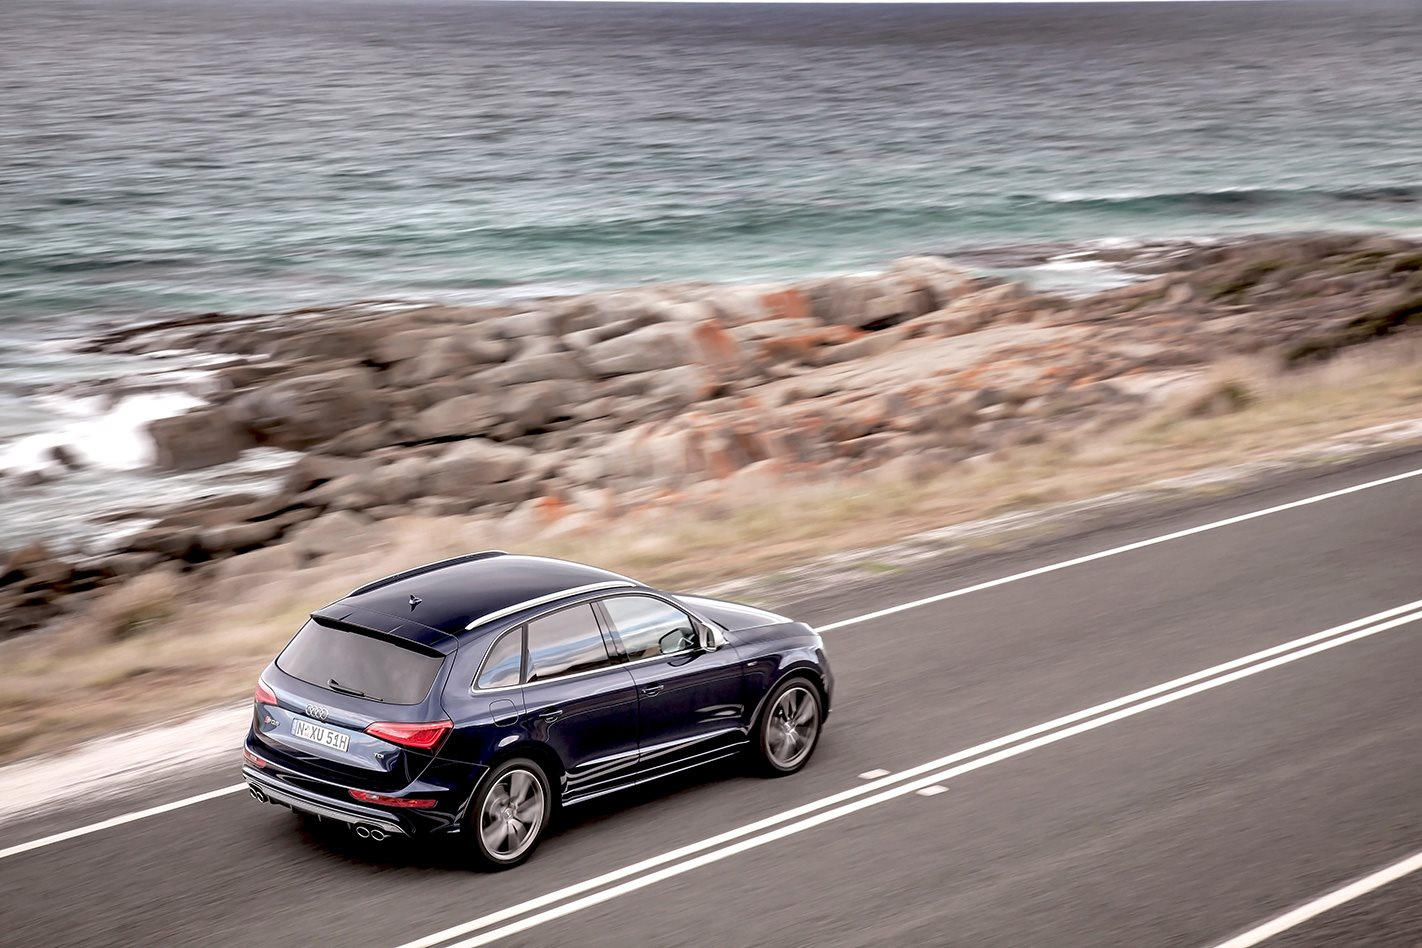 Audi SQ5 on road.jpg